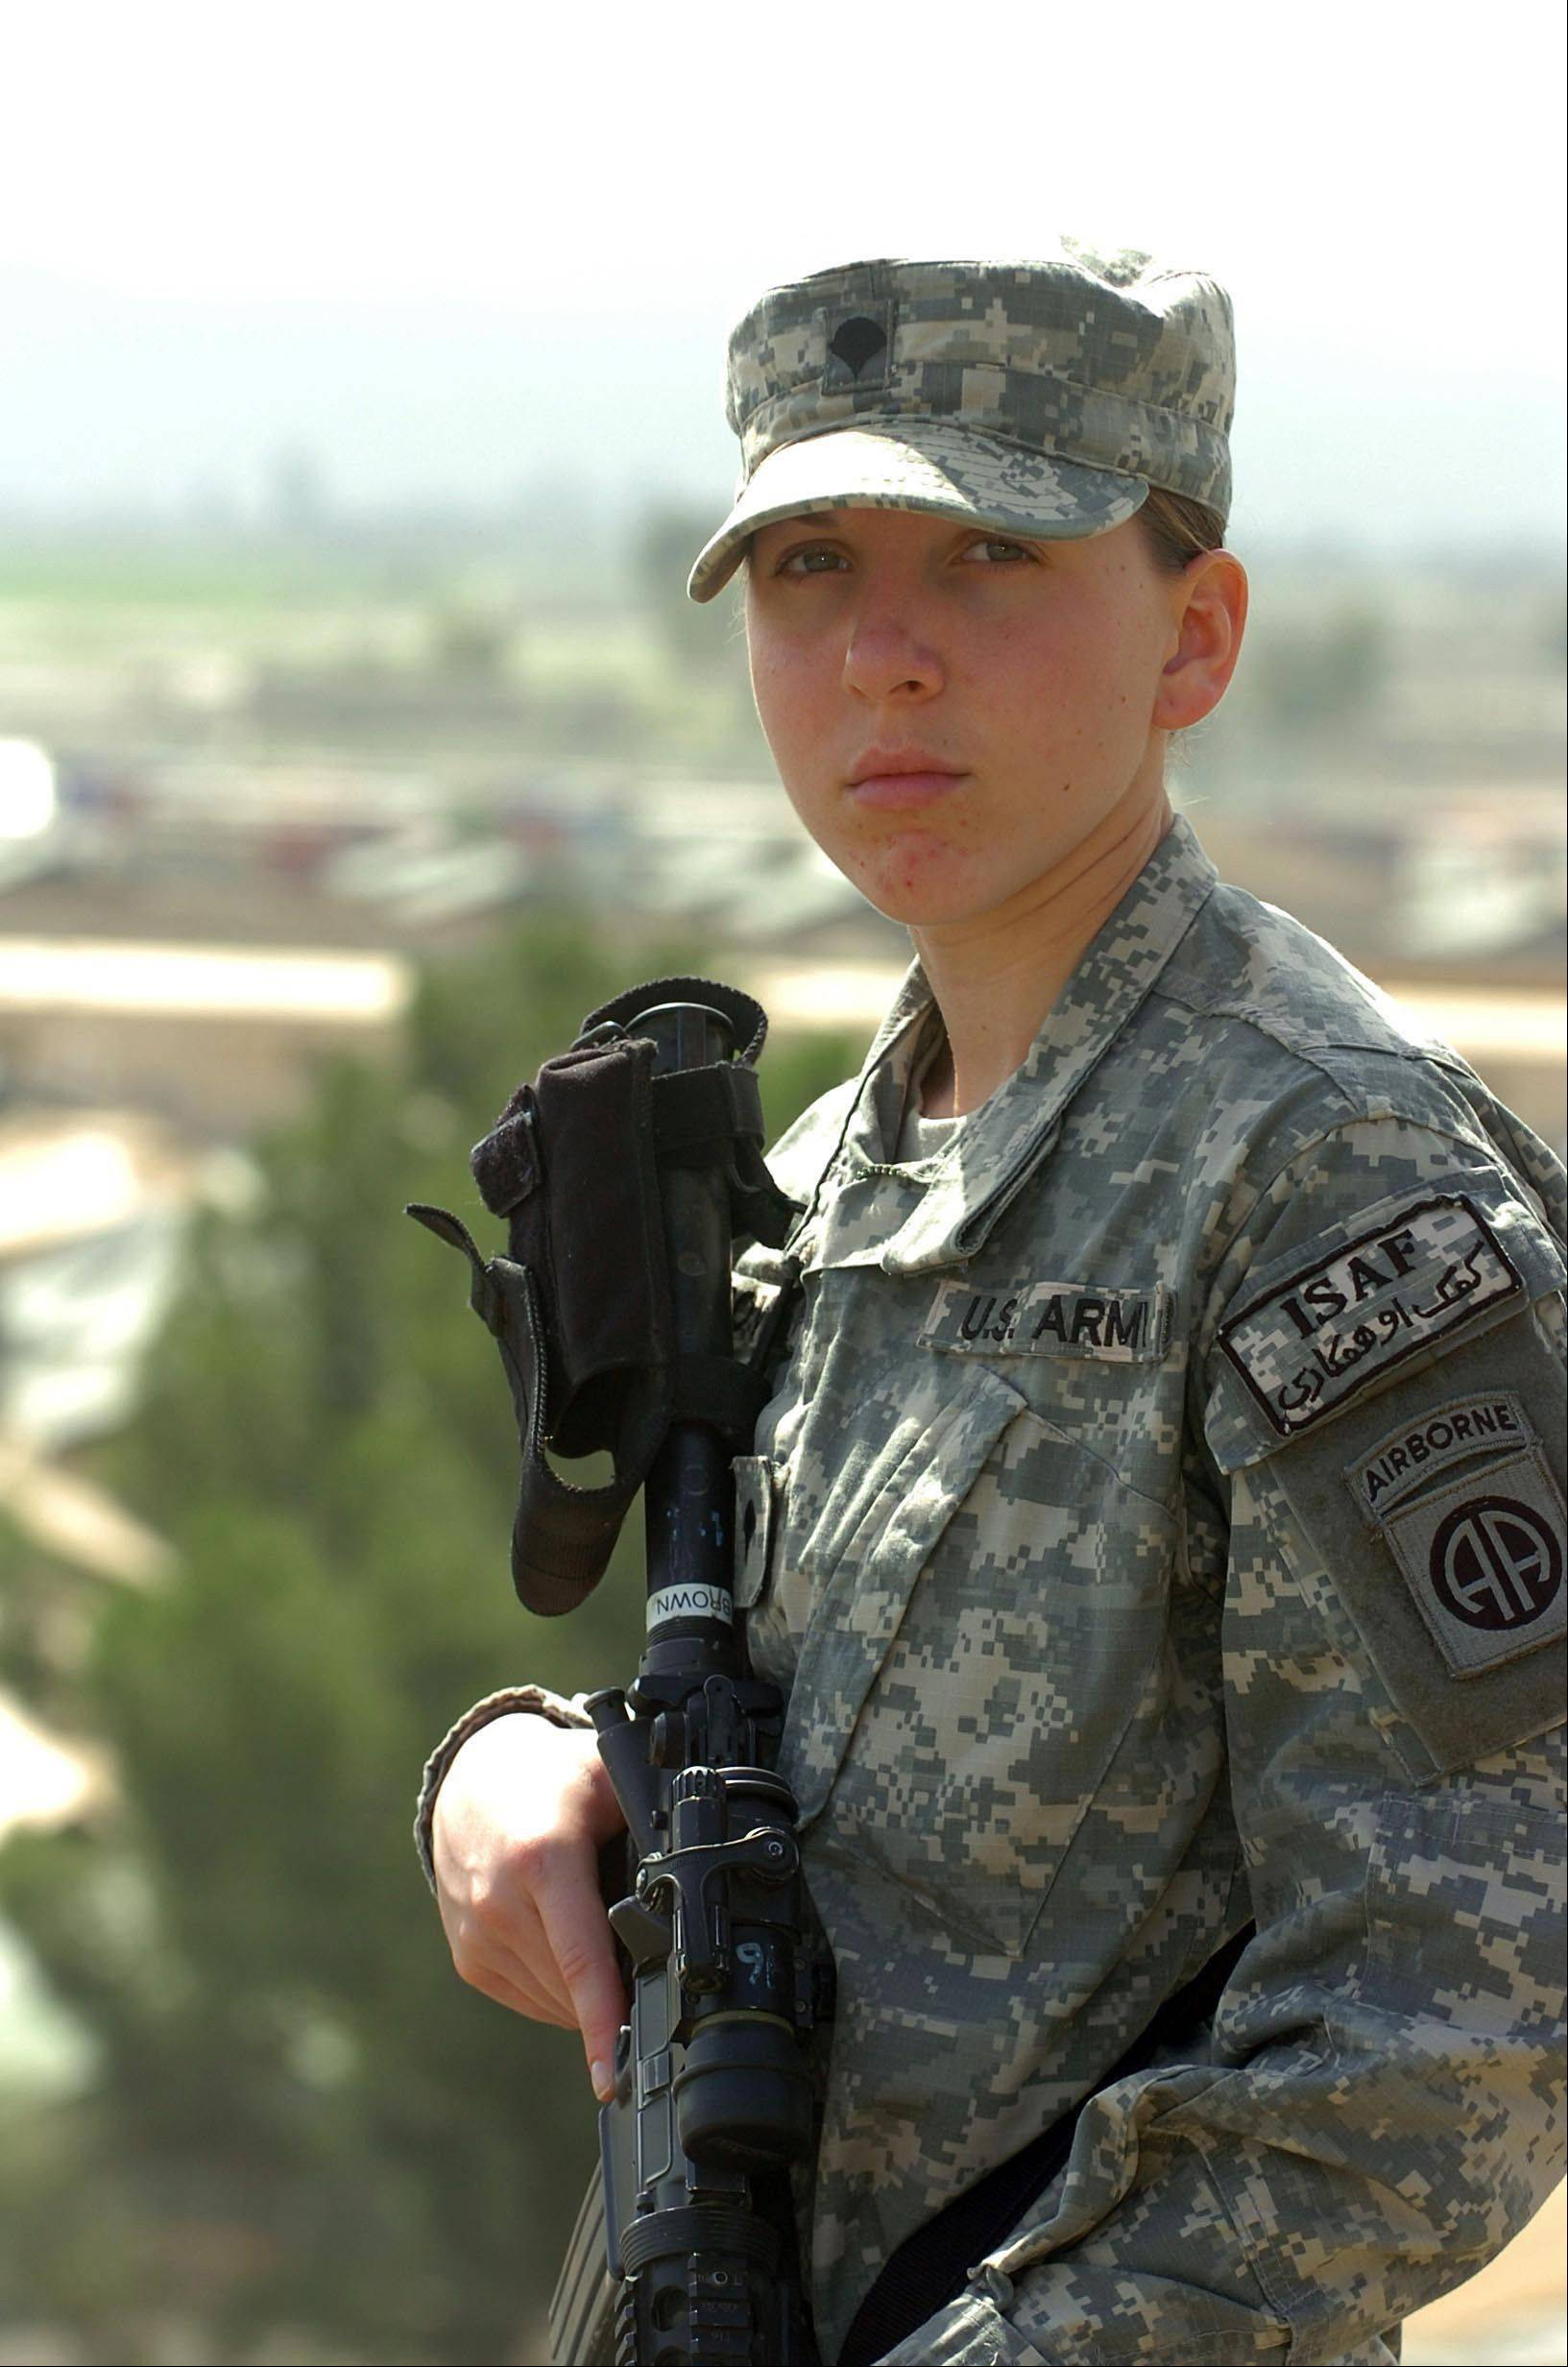 March 20, 2008: Army Spc. Monica Brown, a medic from the 782nd Brigade Support Battalion, 4th Brigade Combat Team, 82nd Airborne Division, is the second female since World War II to earn the Silver Star award for her actions while in combat.